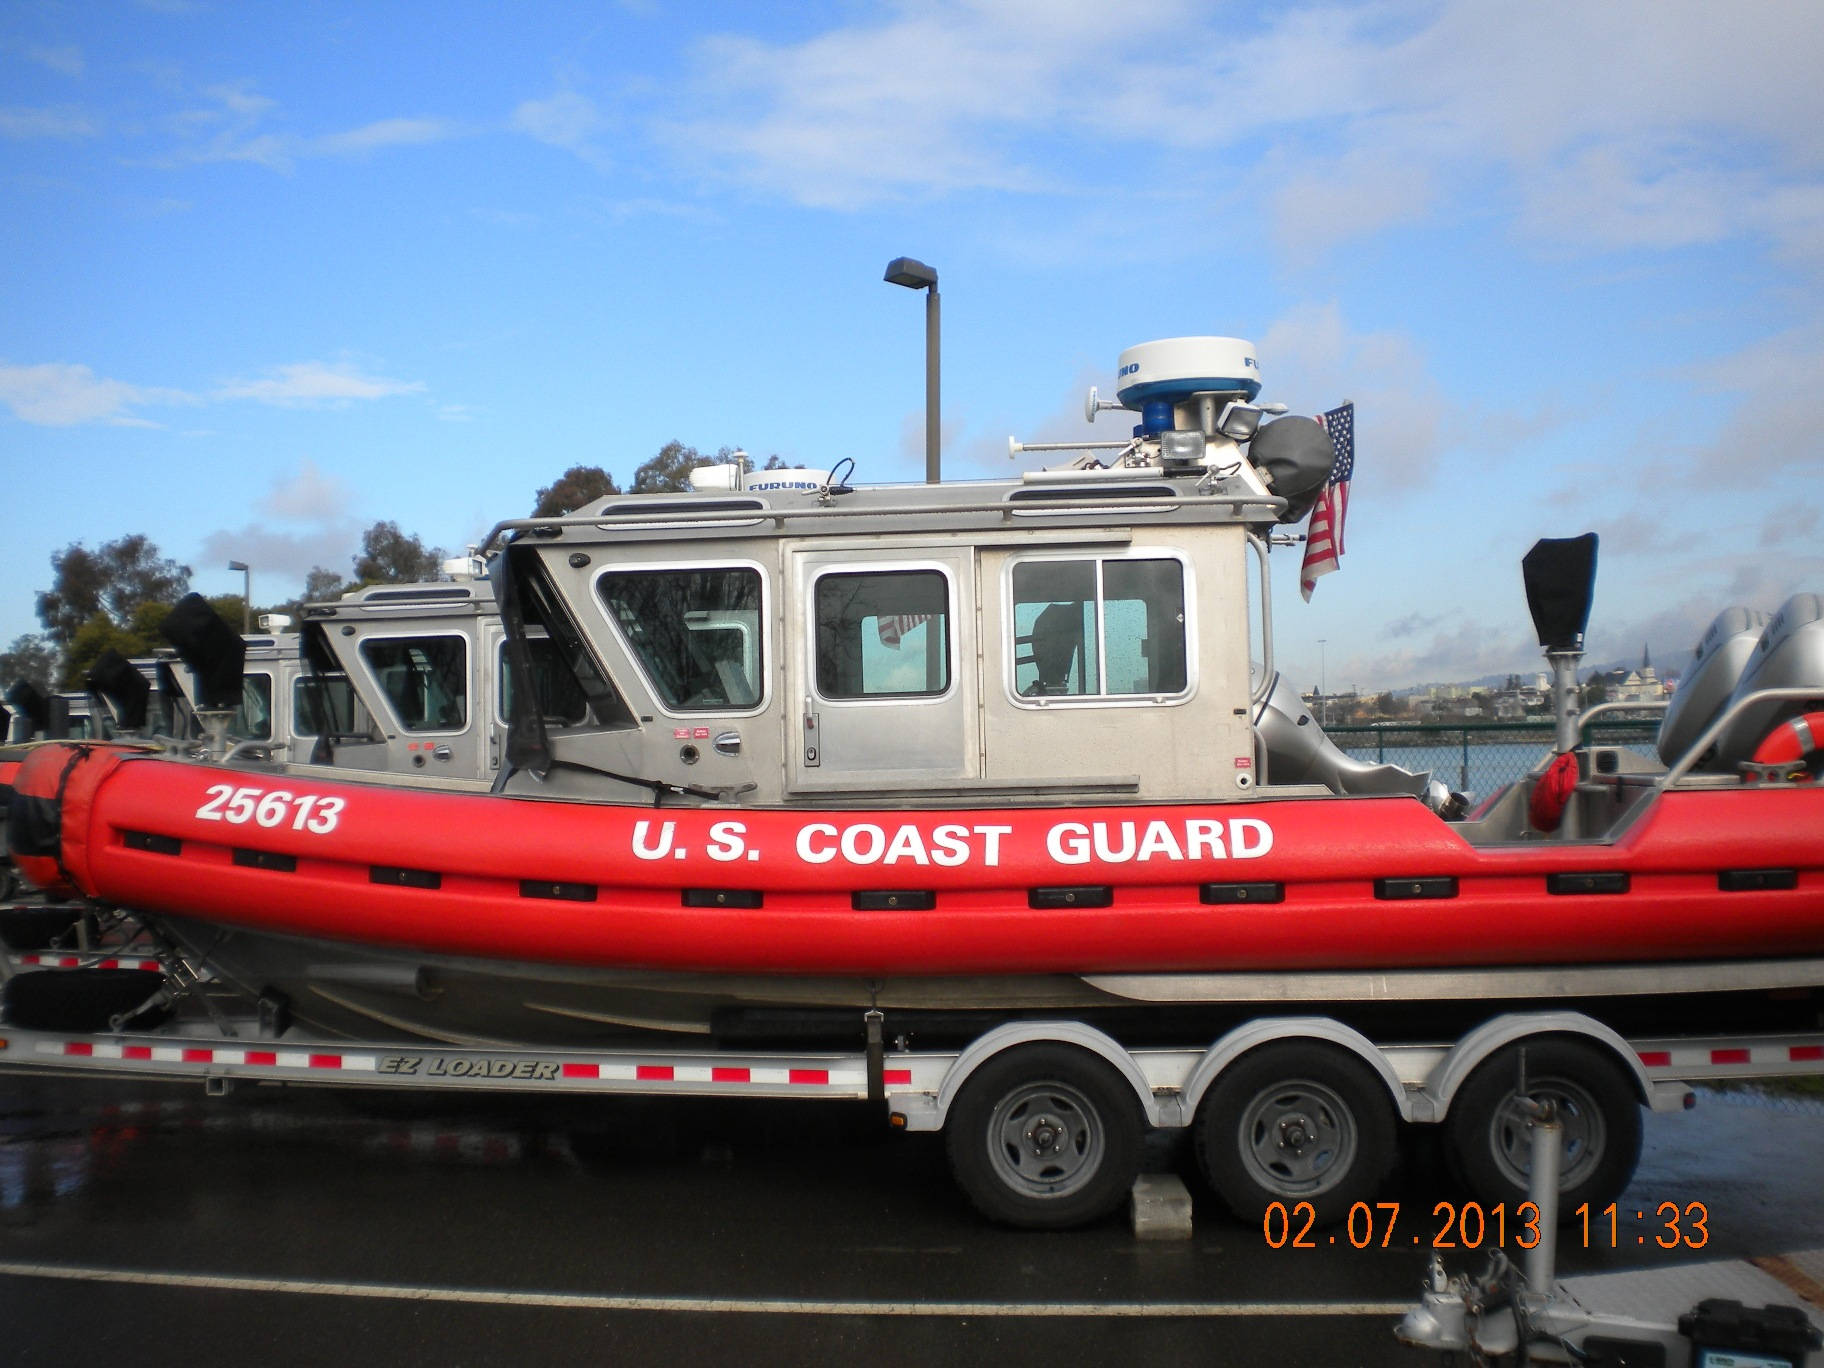 Marina del Rey Harbor Patrol Purchases CG Safe Boats